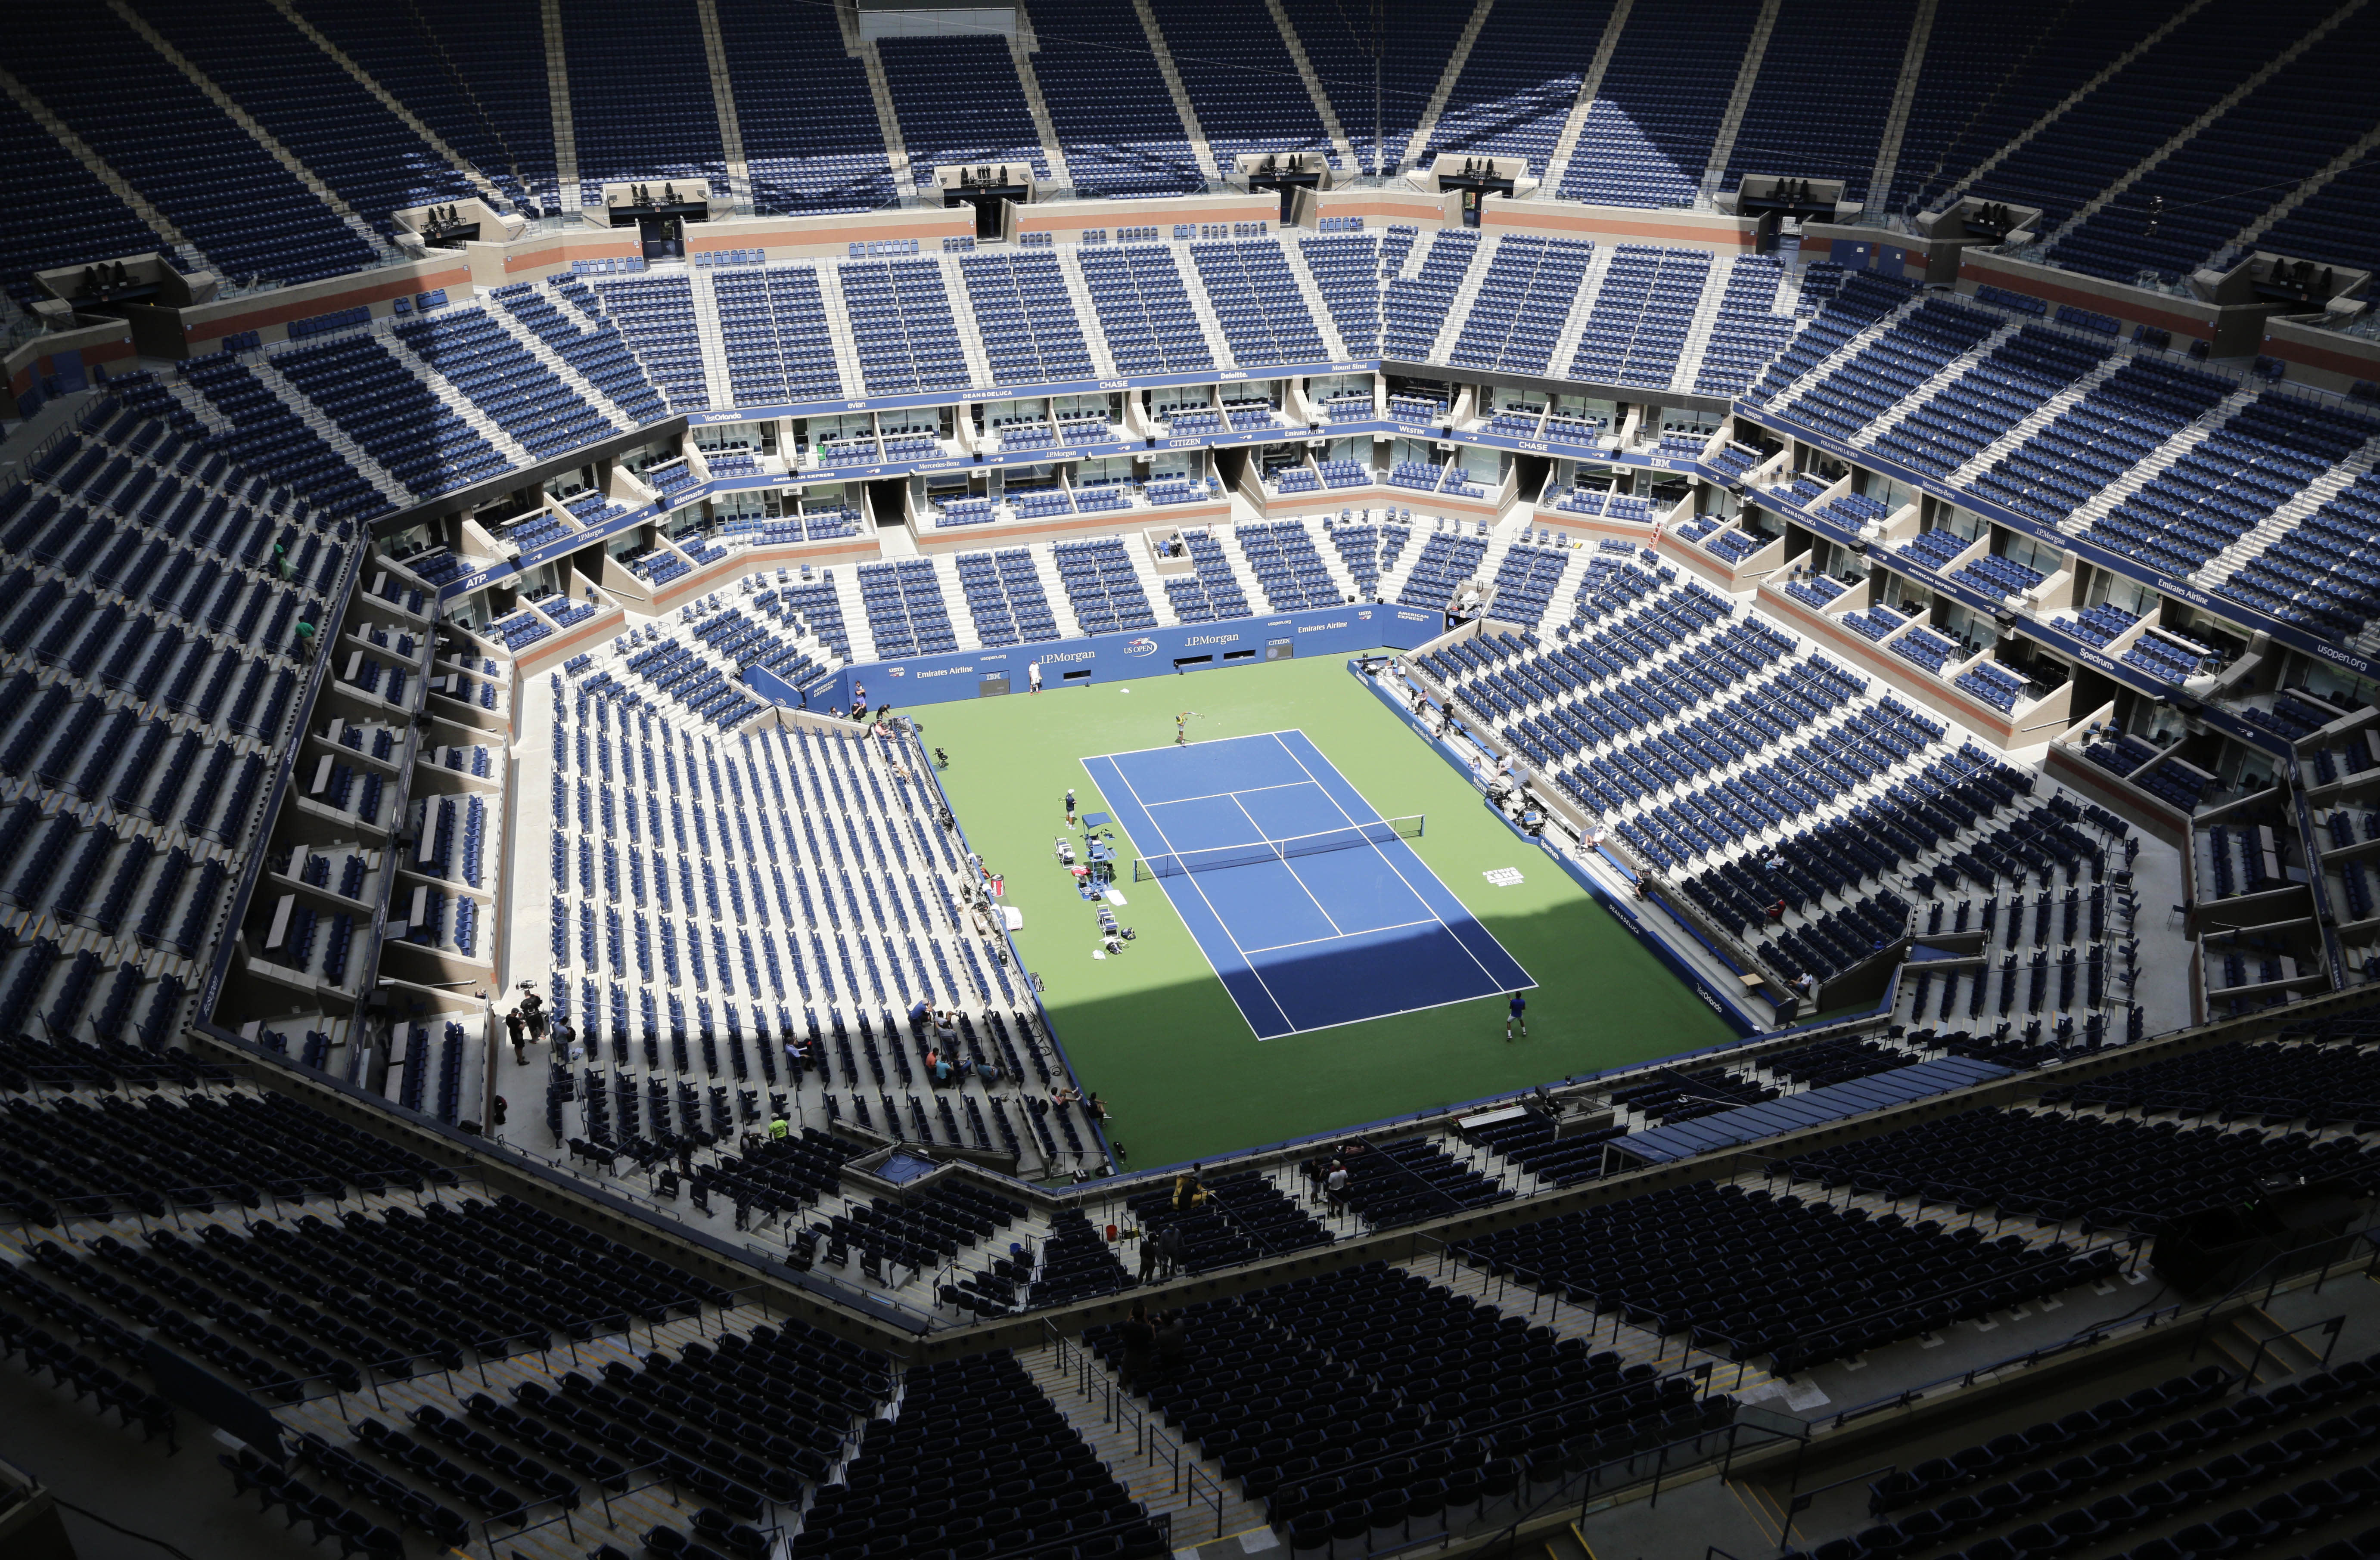 In this file photo from Aug. 27, 2017, players practice at the empty Arthur Ashe Stadium at the U.S. Open tennis tournament in New York. New York City's comptroller says the organizers of the U.S. Open tennis tournament owe the city $311,000 in back rent for use of the tournament site in Queens. (AP Photo/Peter Morgan)